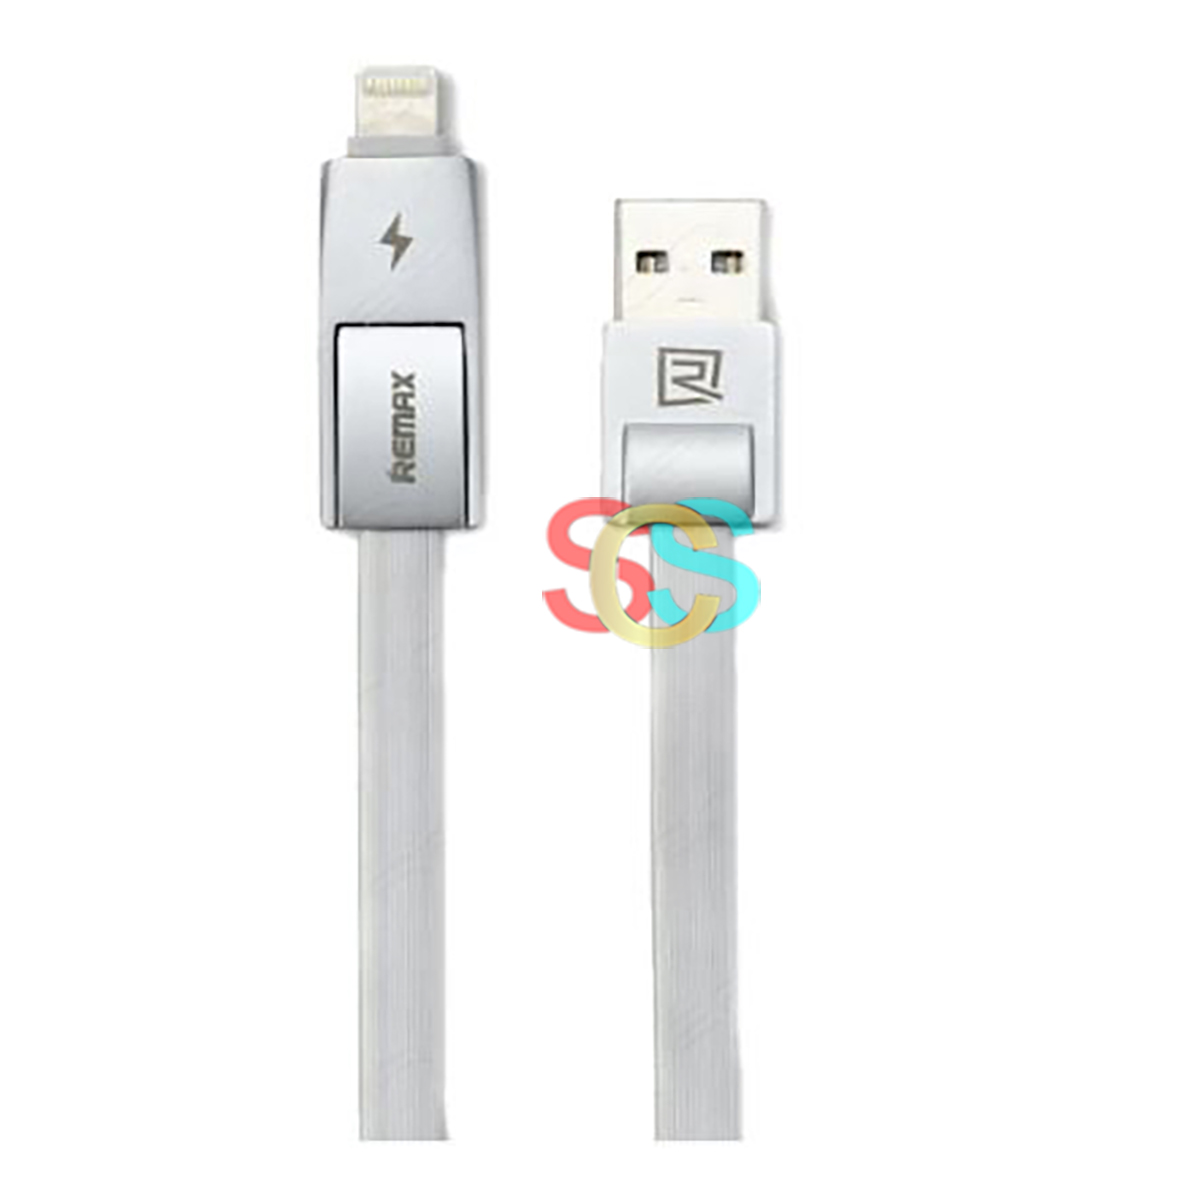 USB Male to Micro USB + Lightning, 1 Meter, Silver Data Cable